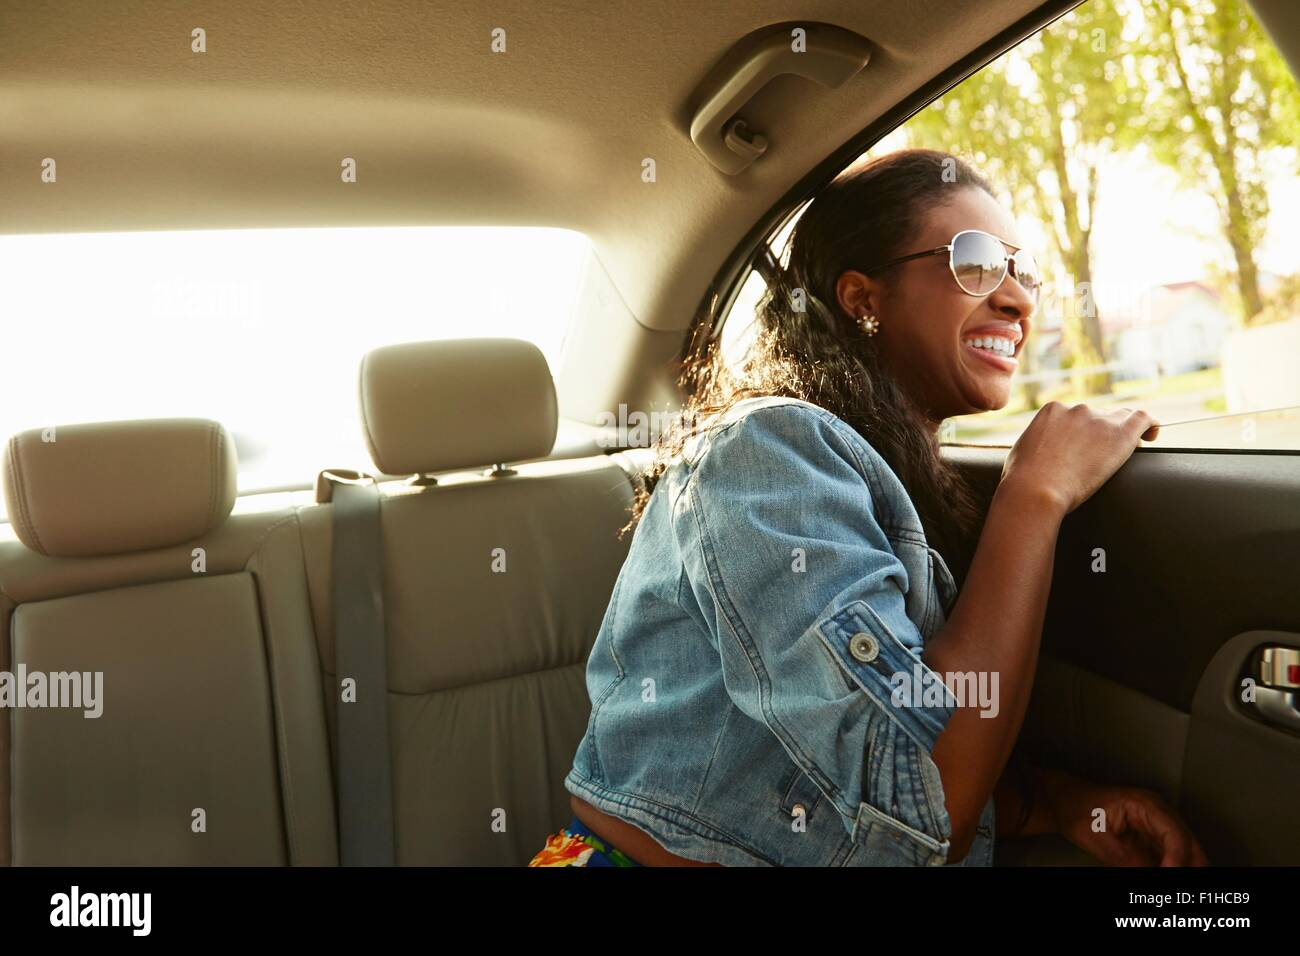 Young woman wearing sunglasses looking out of car window - Stock Image